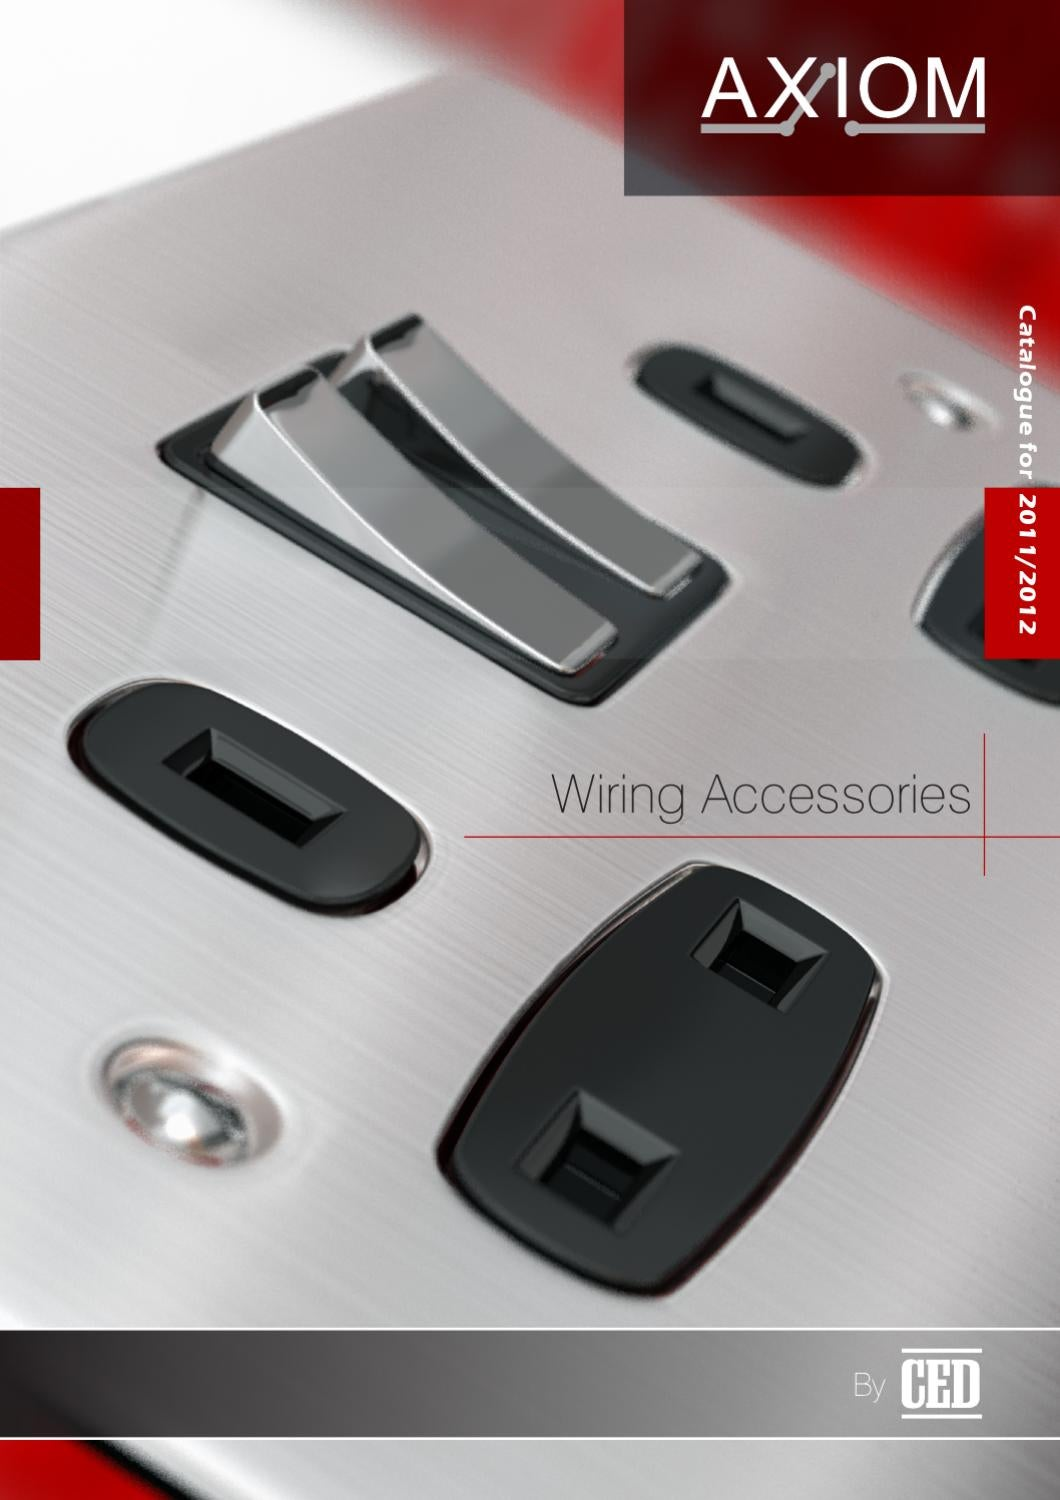 Axiom Wiring Accessories By Ced By Ced-elec